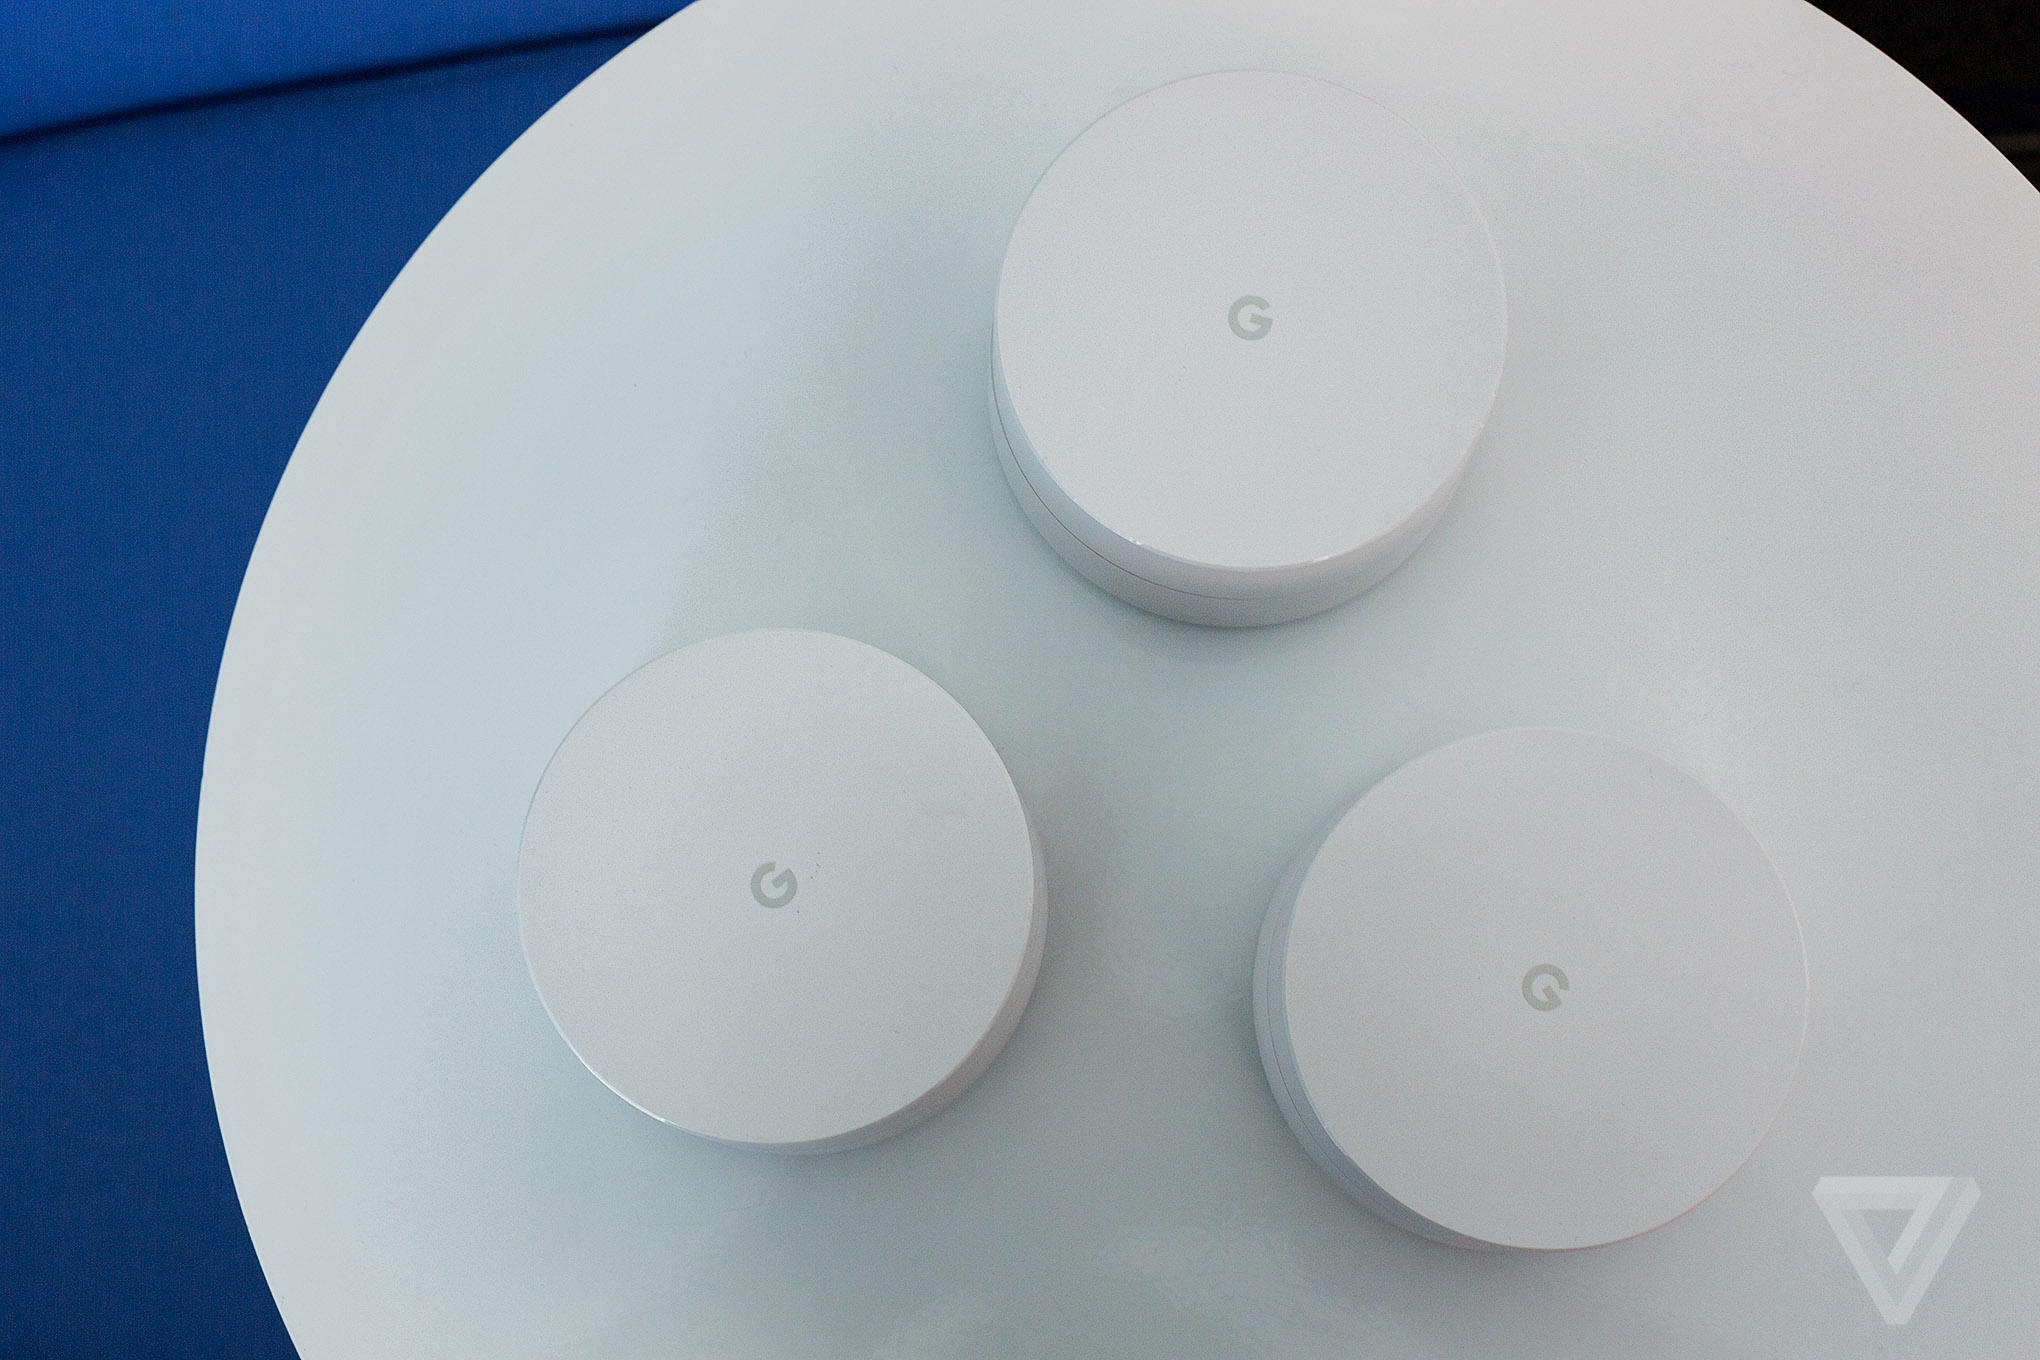 The Google Wifi Routers Are Little White Pucks You Can